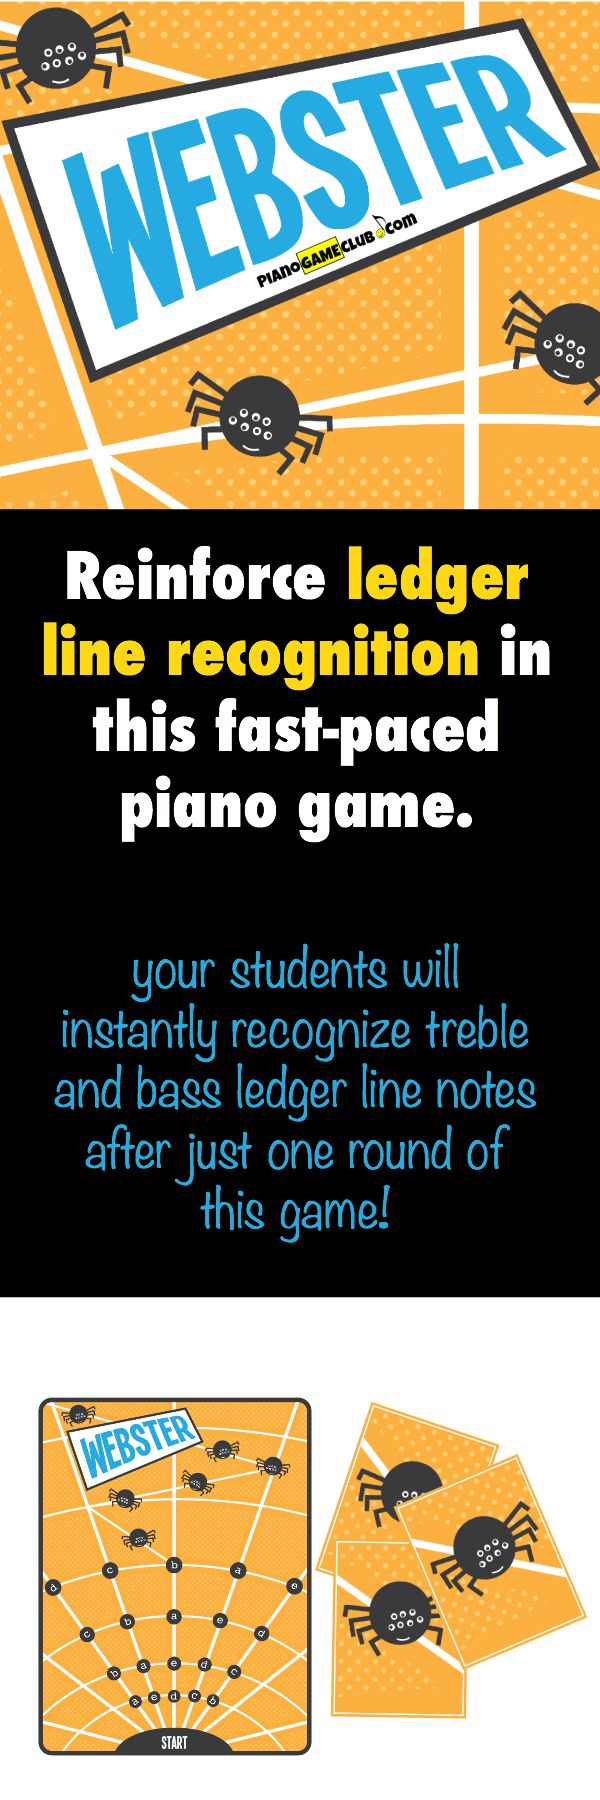 If you have piano students who struggle with reading ledger lines this is the piano game for them! Grab it as a part of August's game set (4 games for just $8!) www.pianogameclub.com